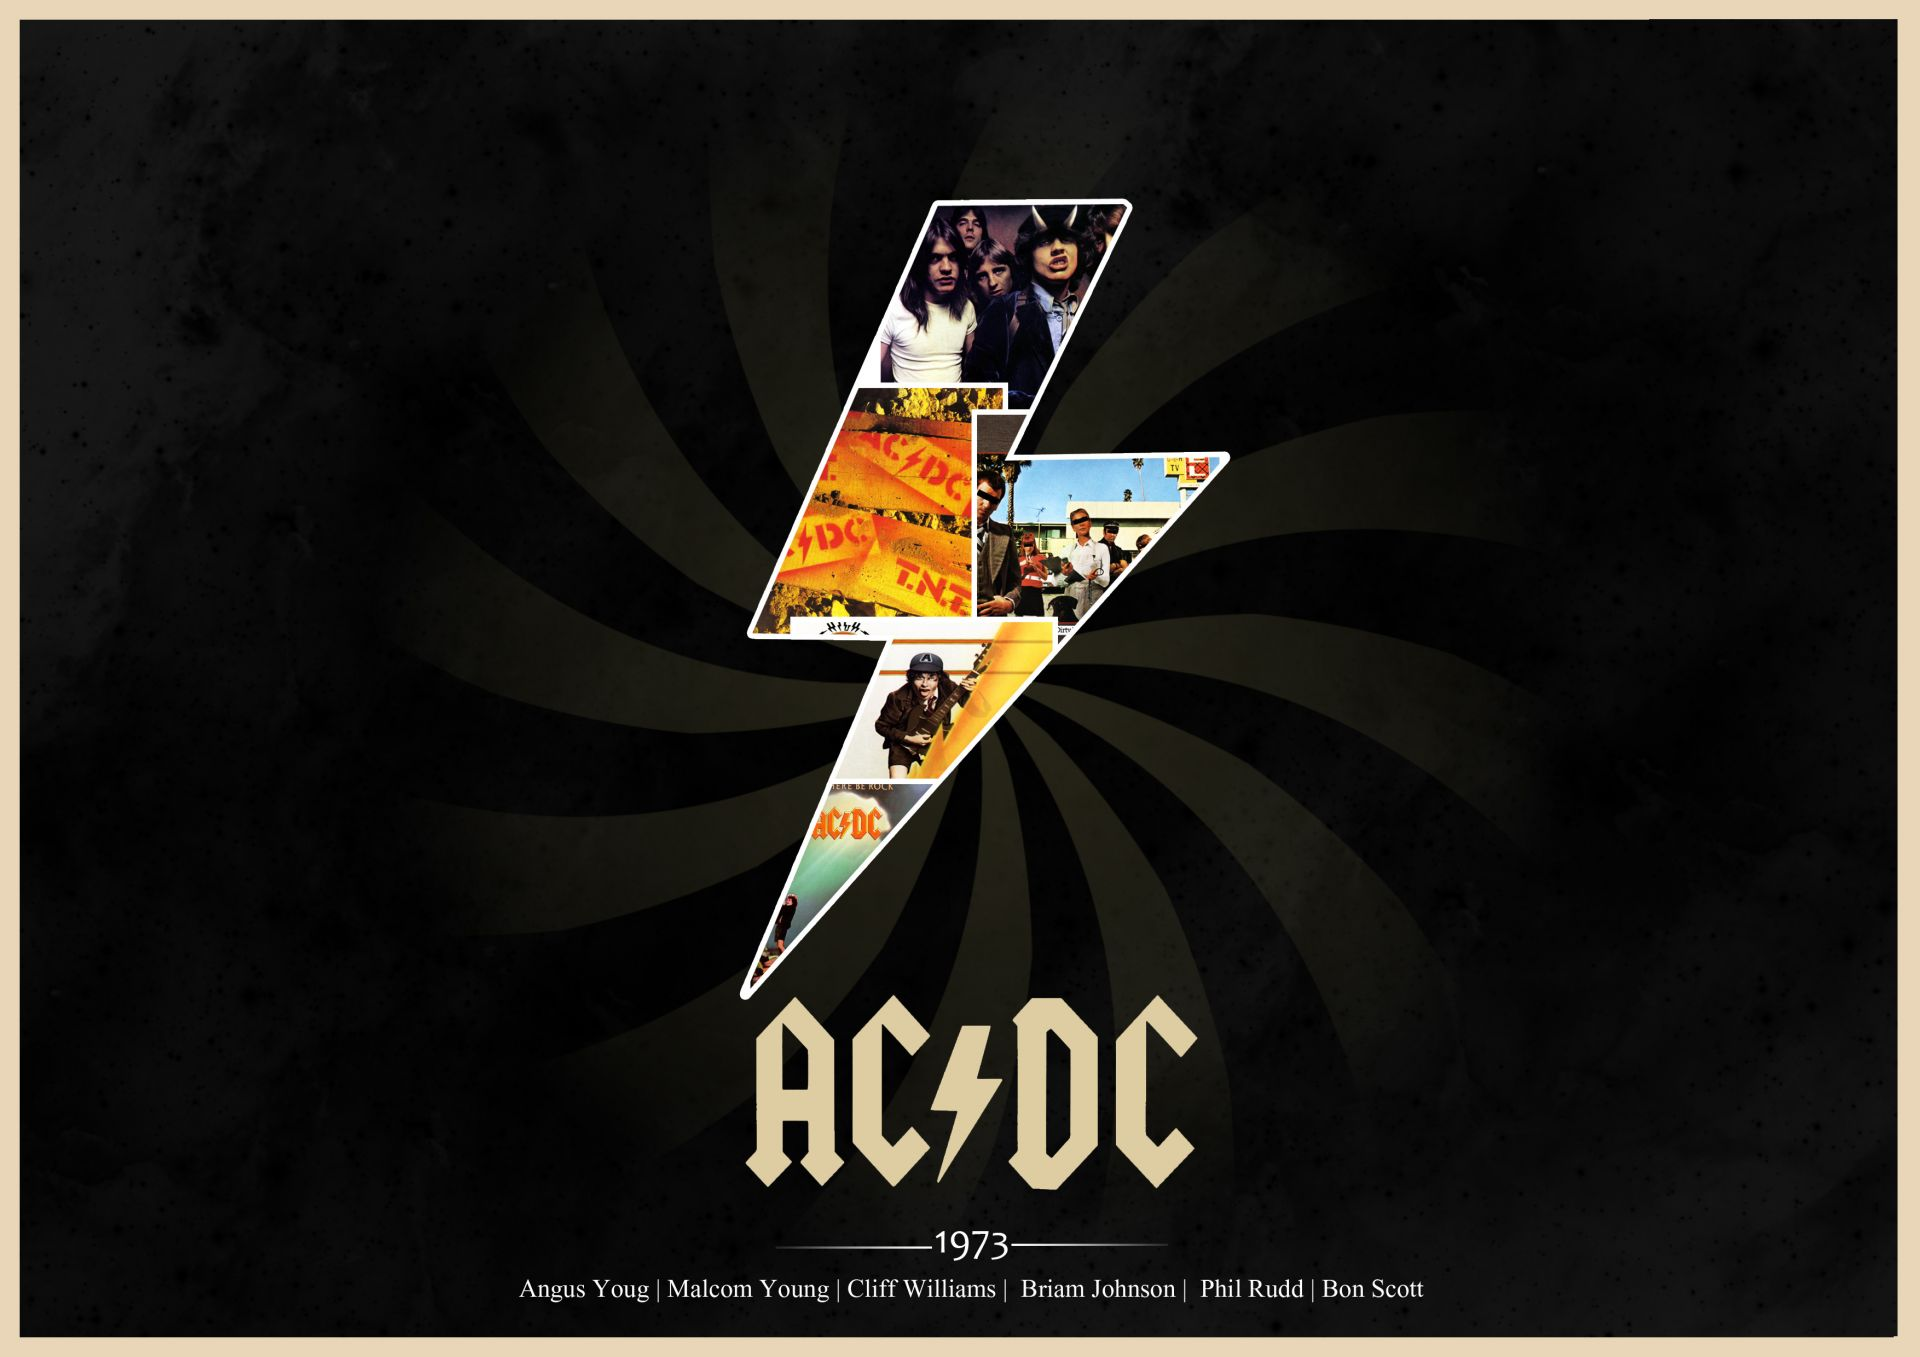 the cover of 1973 classic rock albums ac/dc